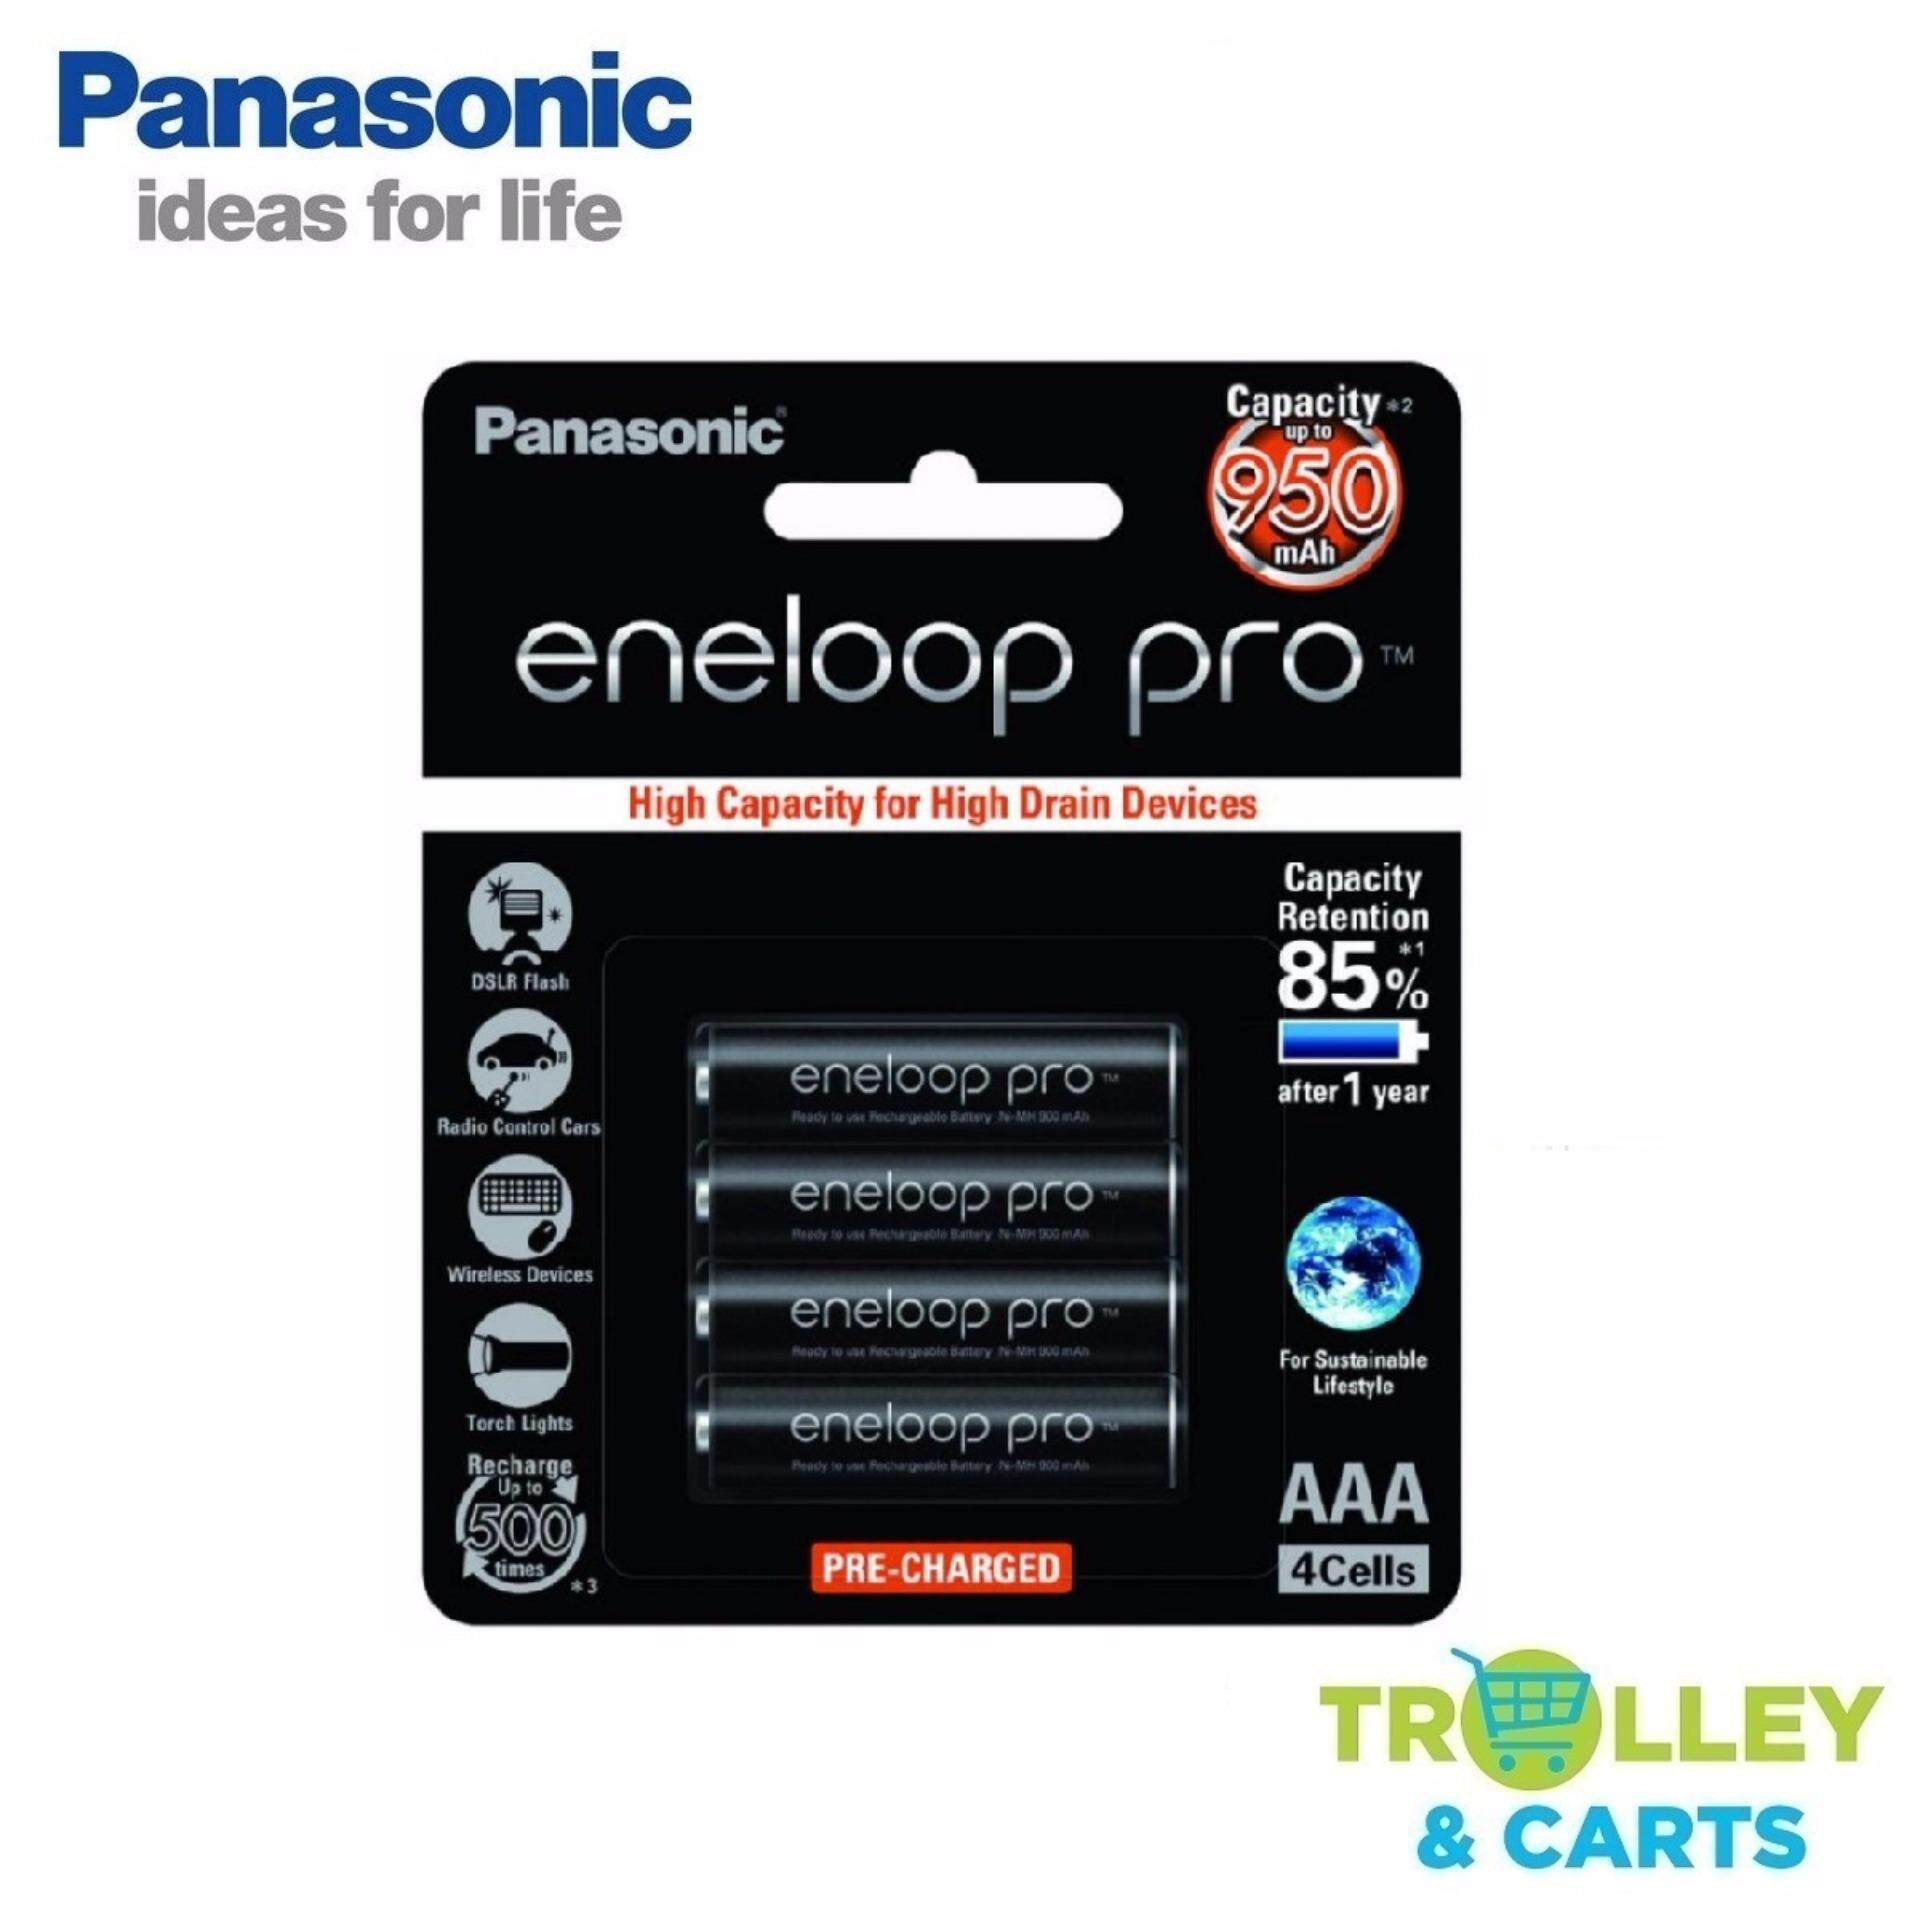 PANASONIC Eneloop Pro AAA Battery Rechargeable 4 x AAA 950mAh Batteries (ORIGINAL) Malaysia